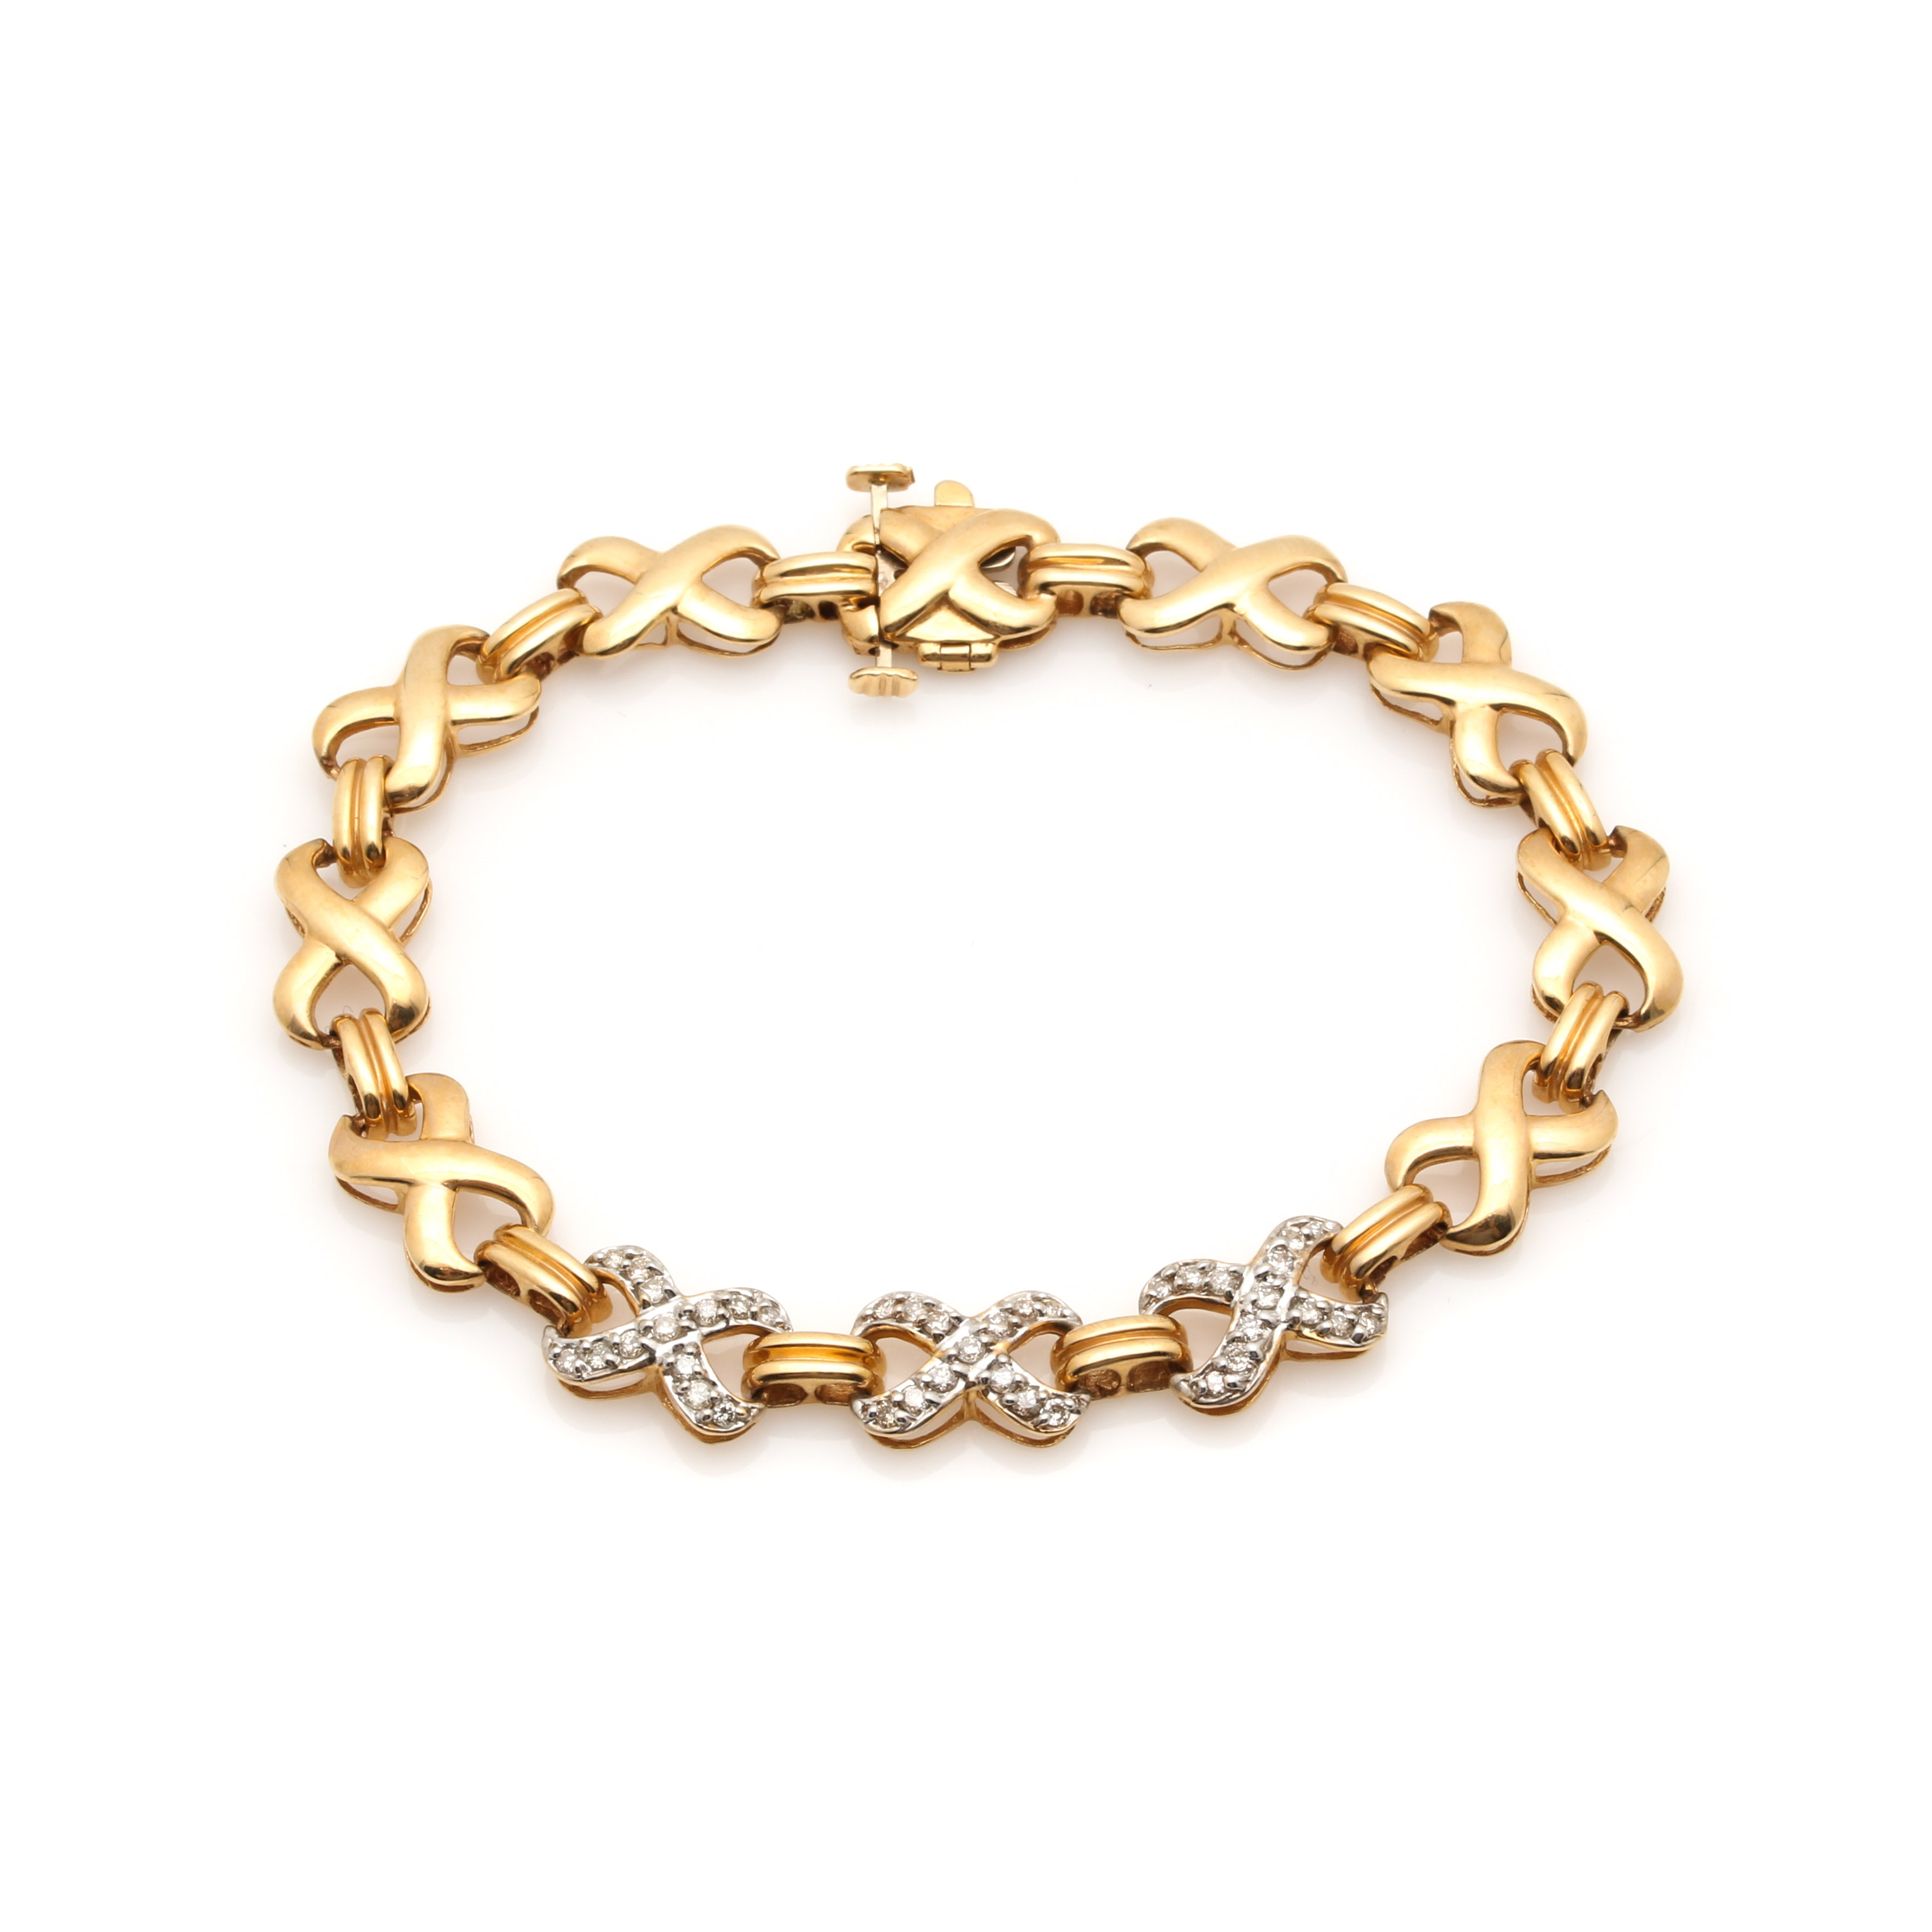 14K Yellow Gold Diamond Bracelet With White Gold Accents